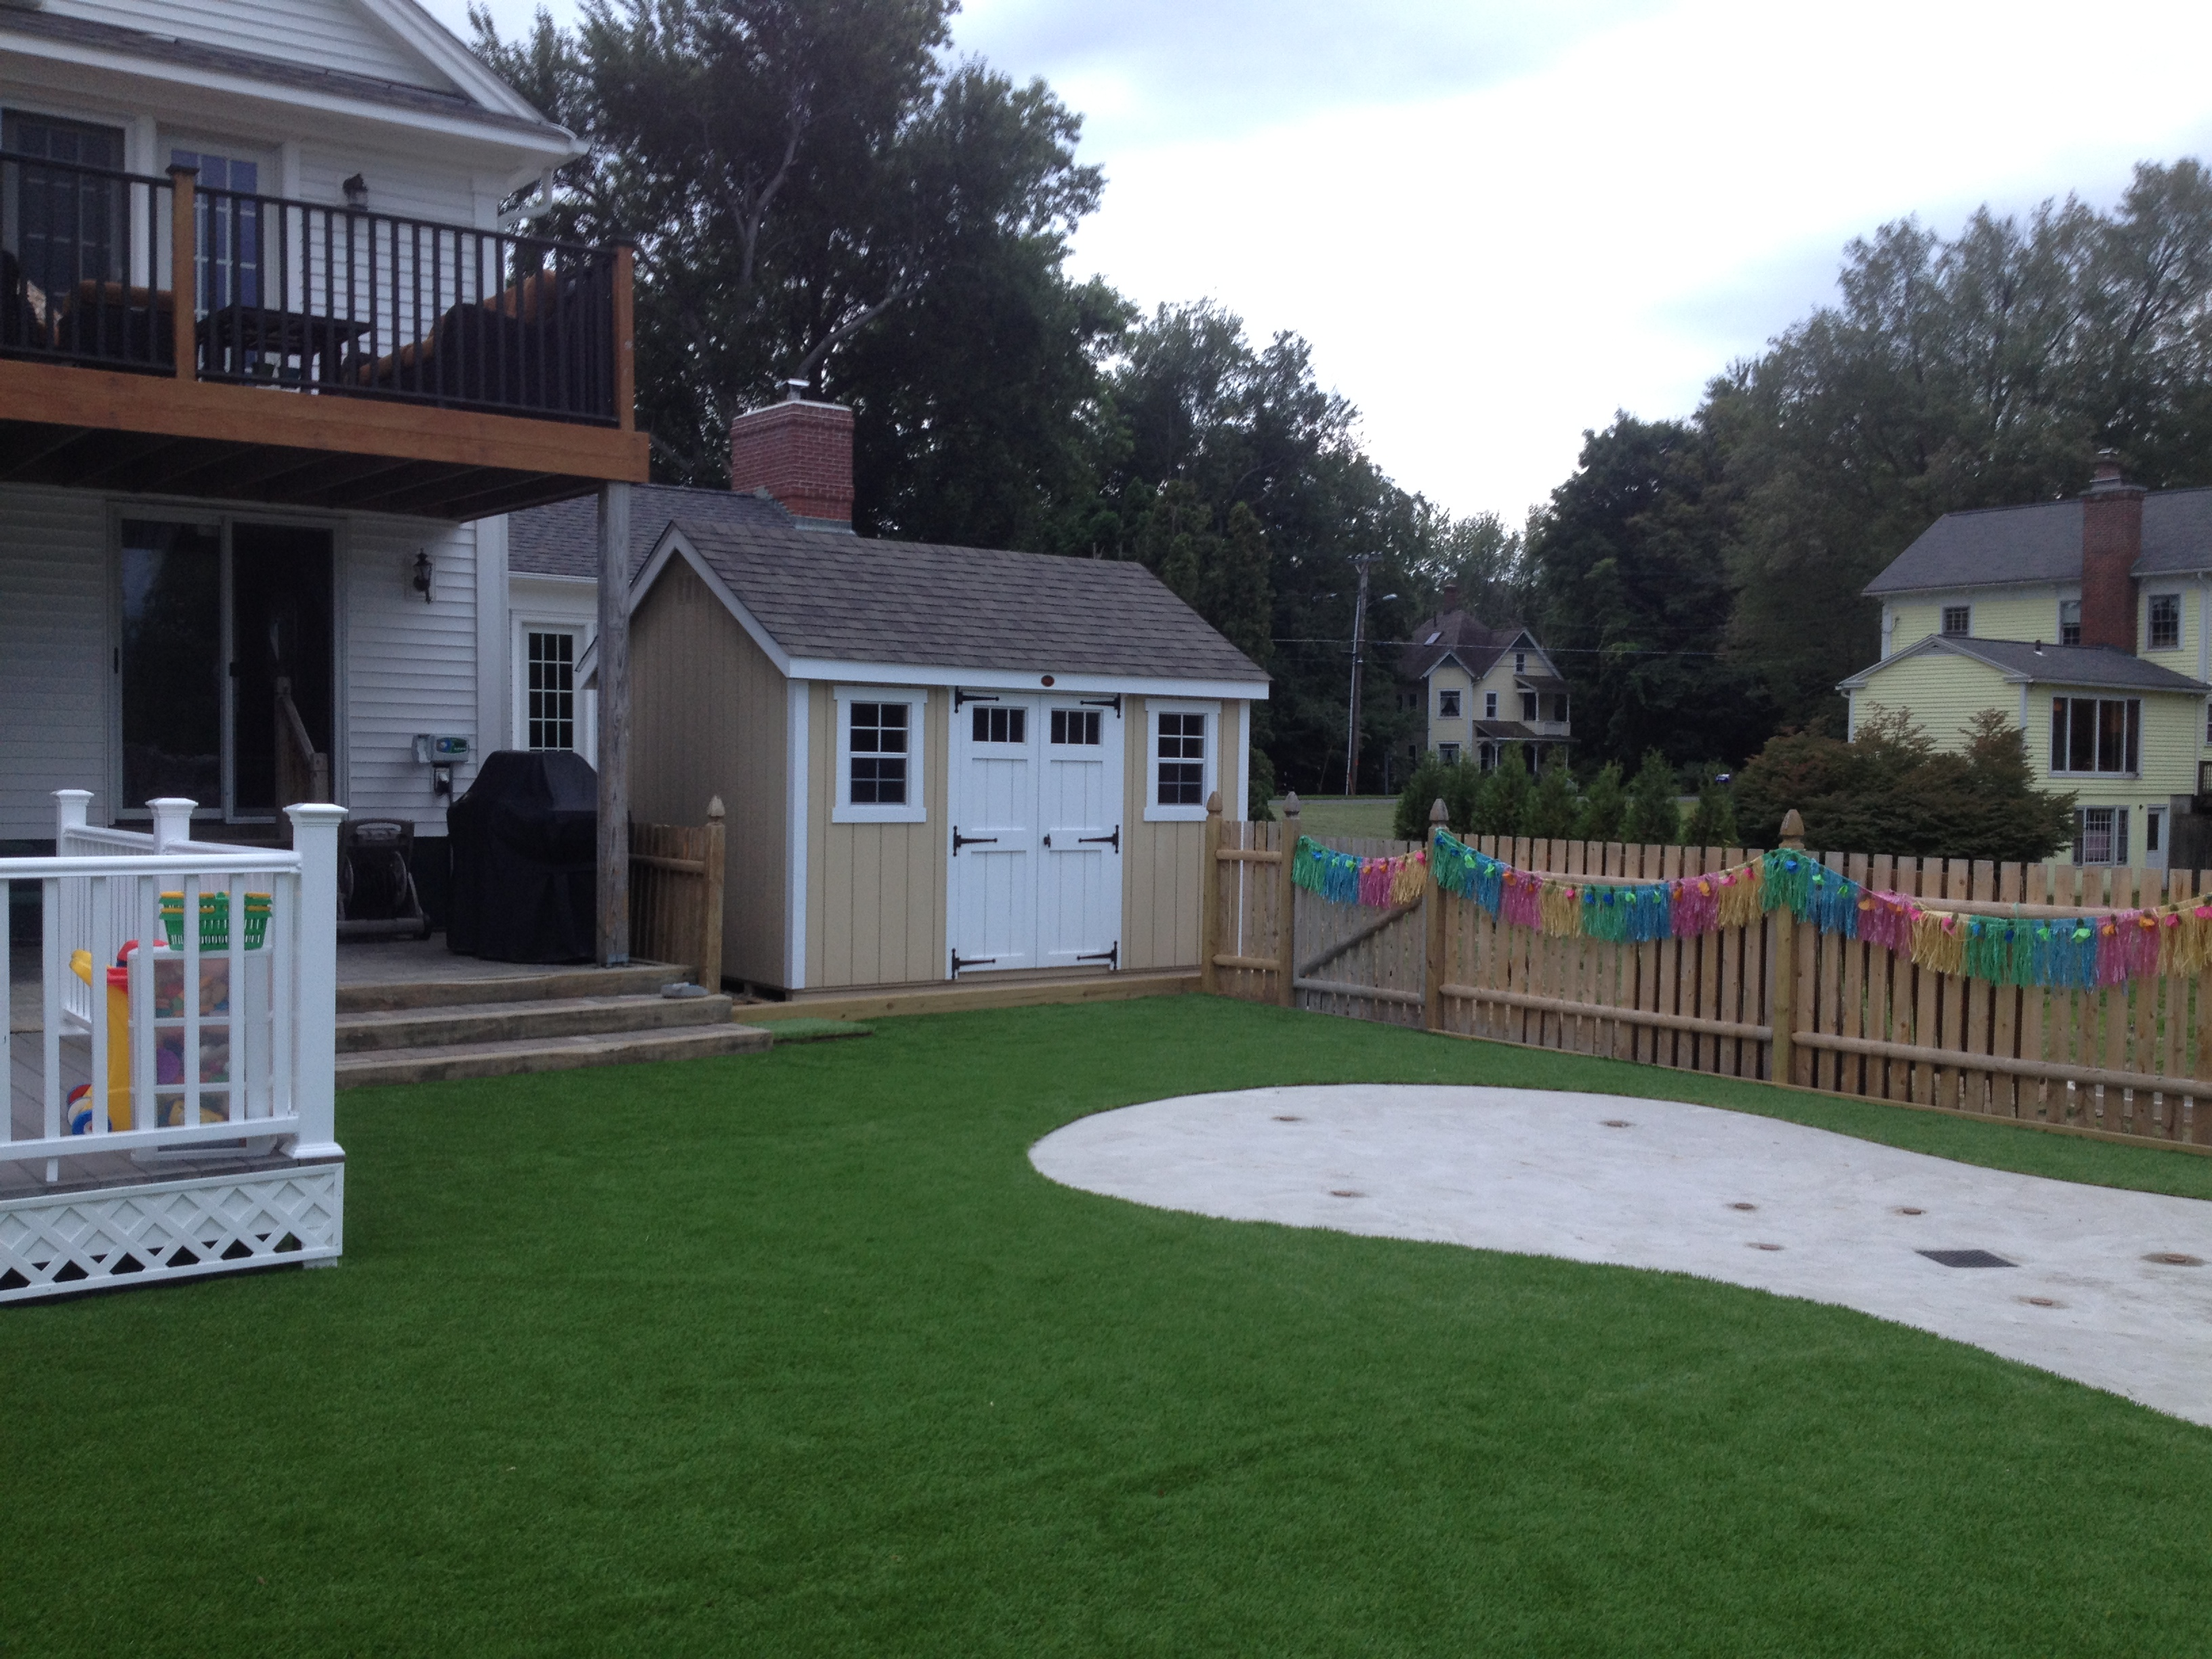 Shed and artificial turf play area